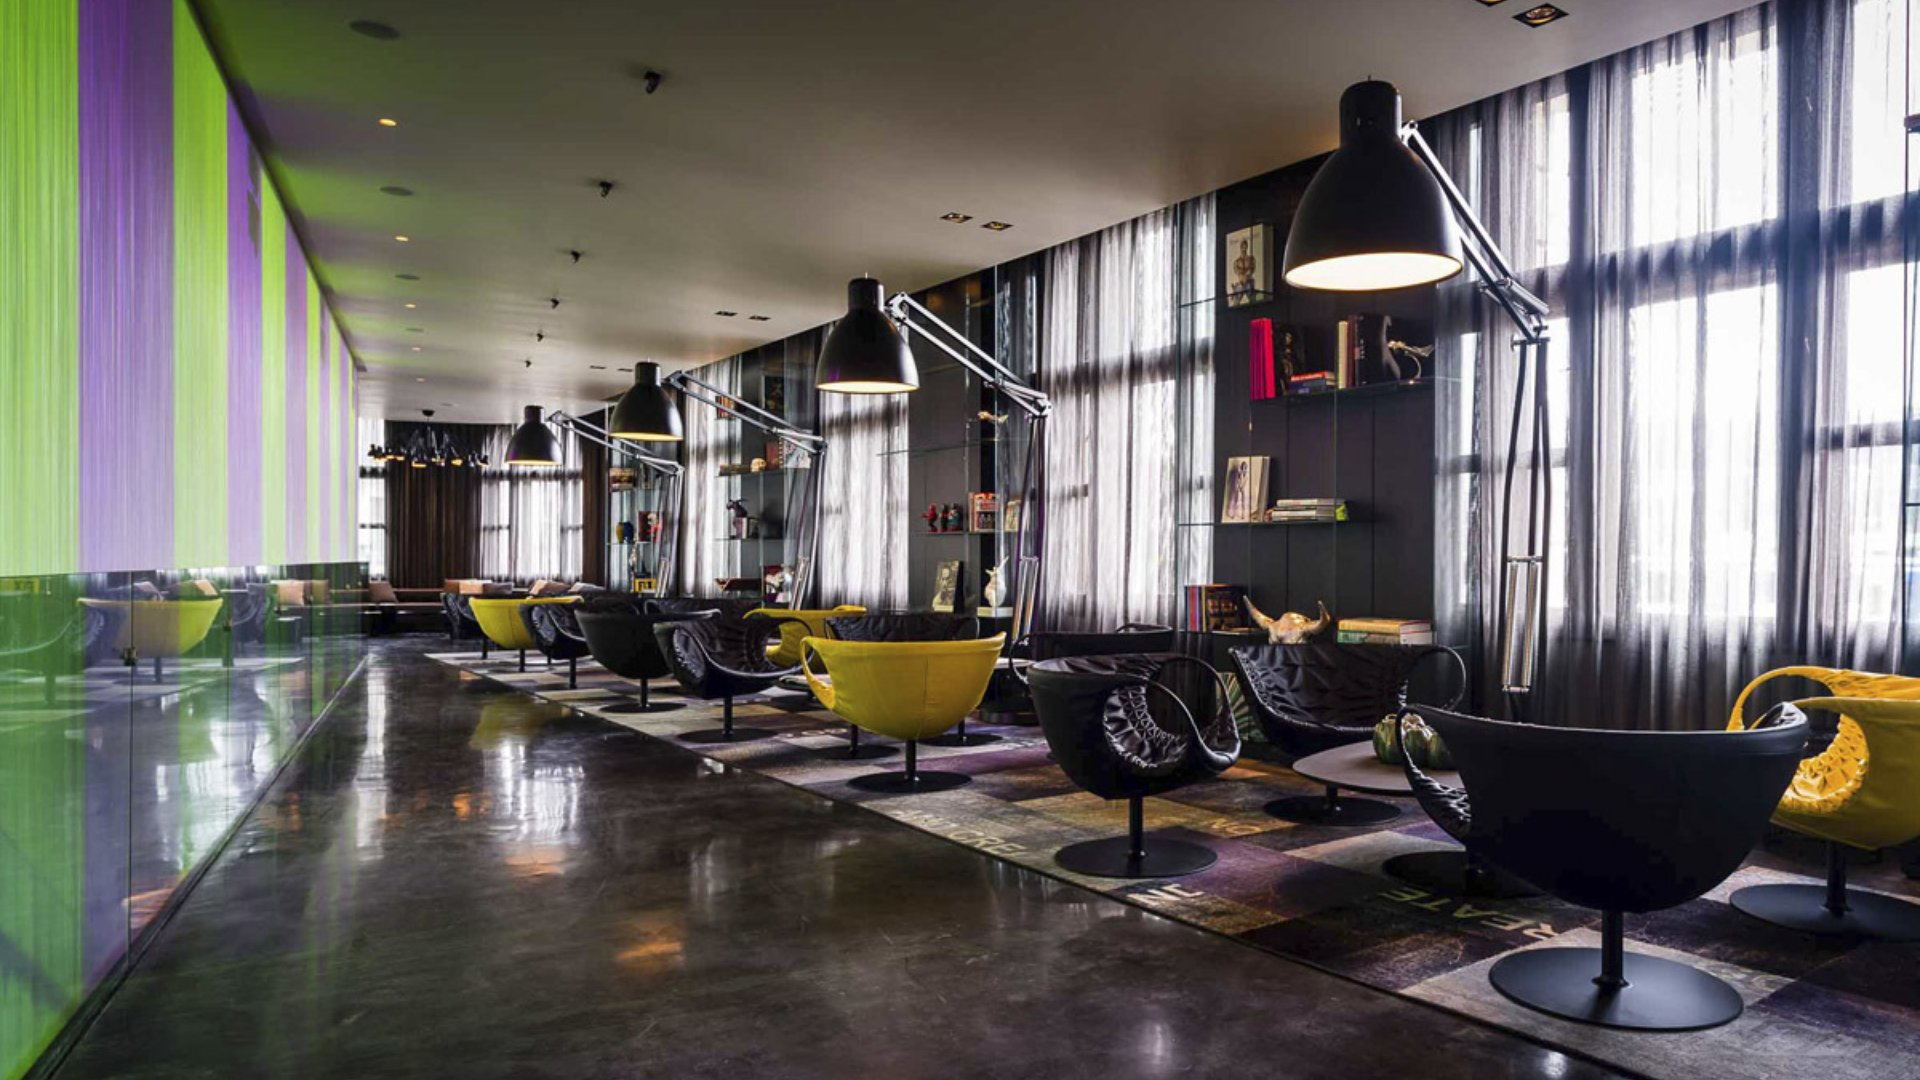 Art'otel Amsterdam modernes Hoteldesign durch Digital Space